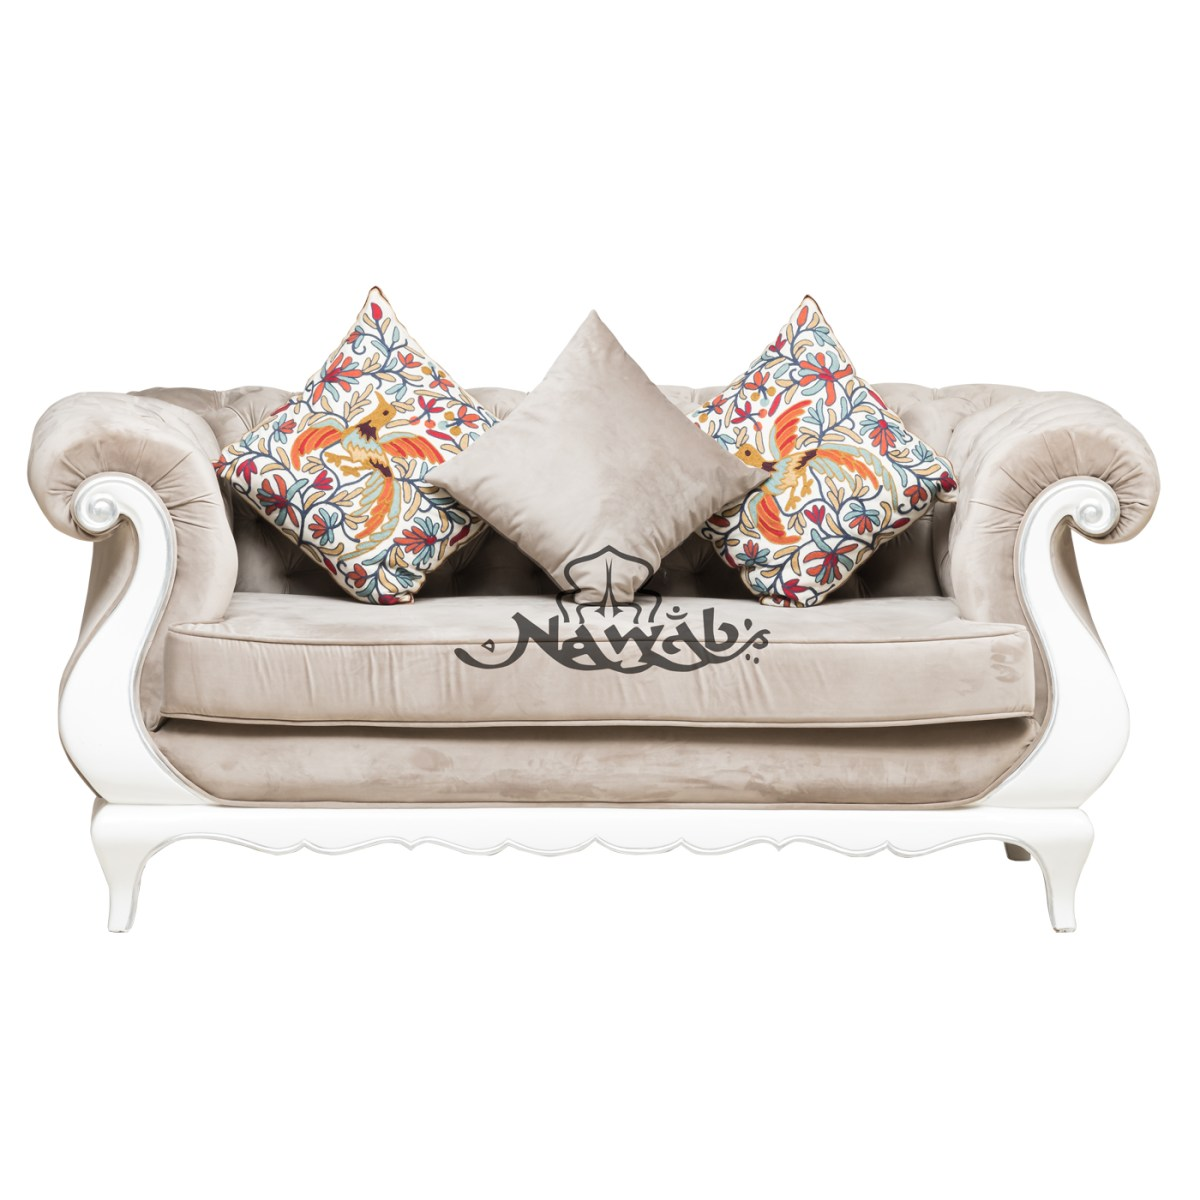 2-seater-teak-wood-frame-hand-carved-velvet-upholstery-white-and-silver-high-gloss-polish-even-at-borders-ethnic-embroidery-cushions